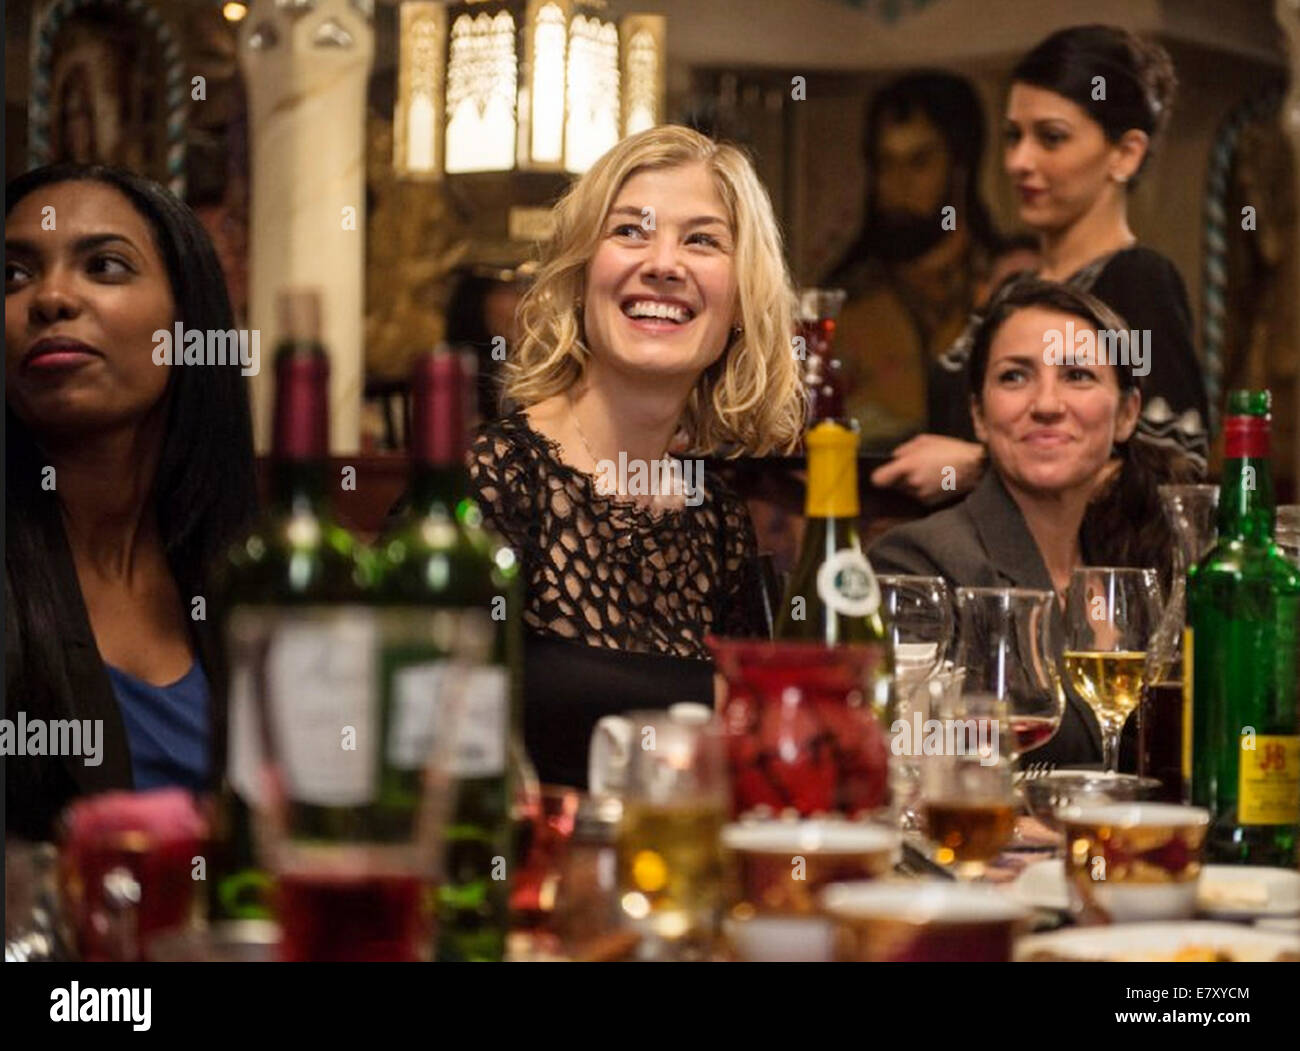 HECTOR AND THE SEARCH FOR HAPPINESS 2014 Egoli Tossell film with Rosamund Pike - Stock Image